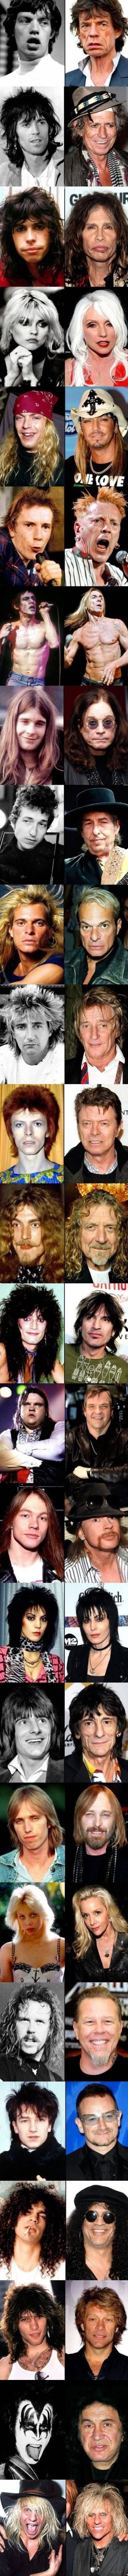 Musical Aging Timeline — 26 rock stars, then and now. (Click pic for full size viewing).